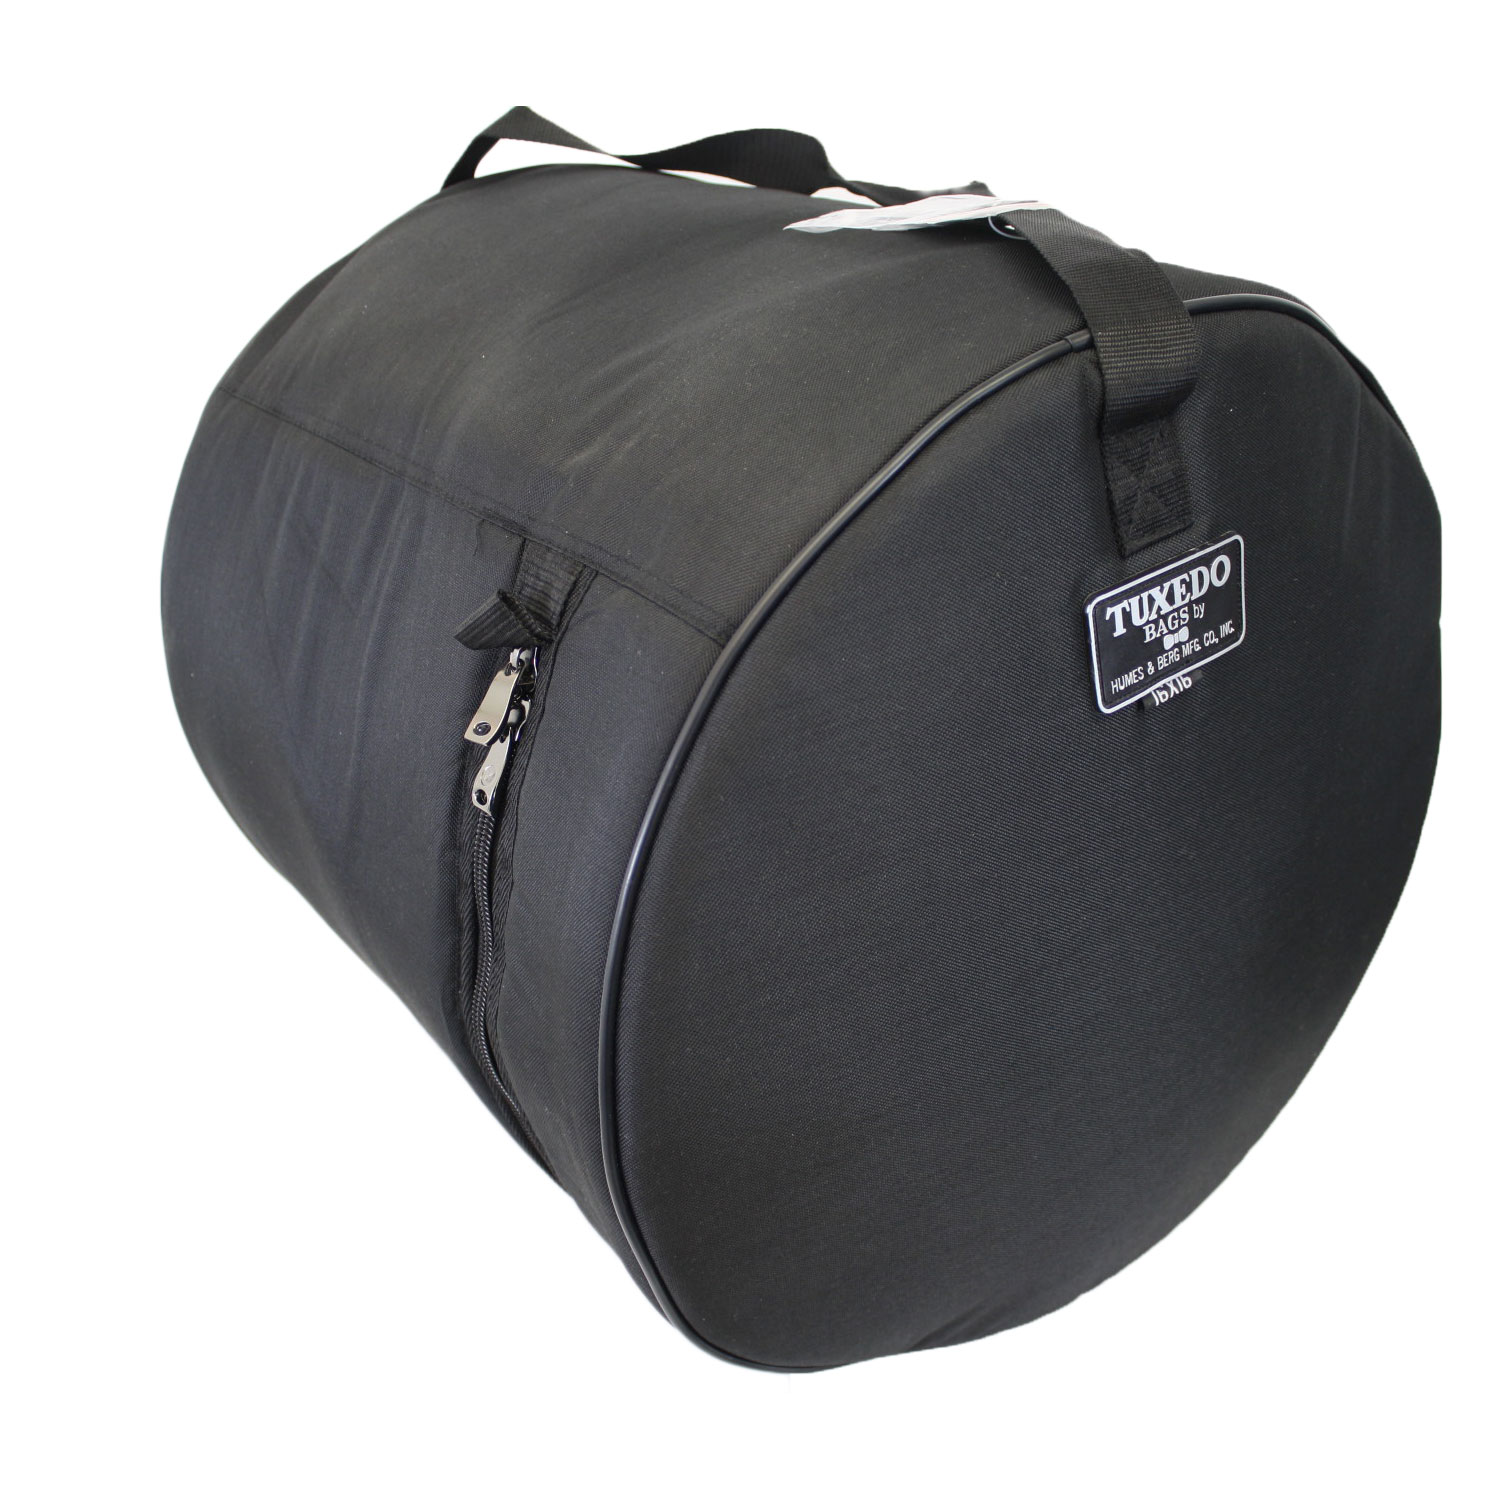 "Humes & Berg 10"" (Deep) x 10"" (Diameter) Tuxedo Tom Bag/Soft Case"